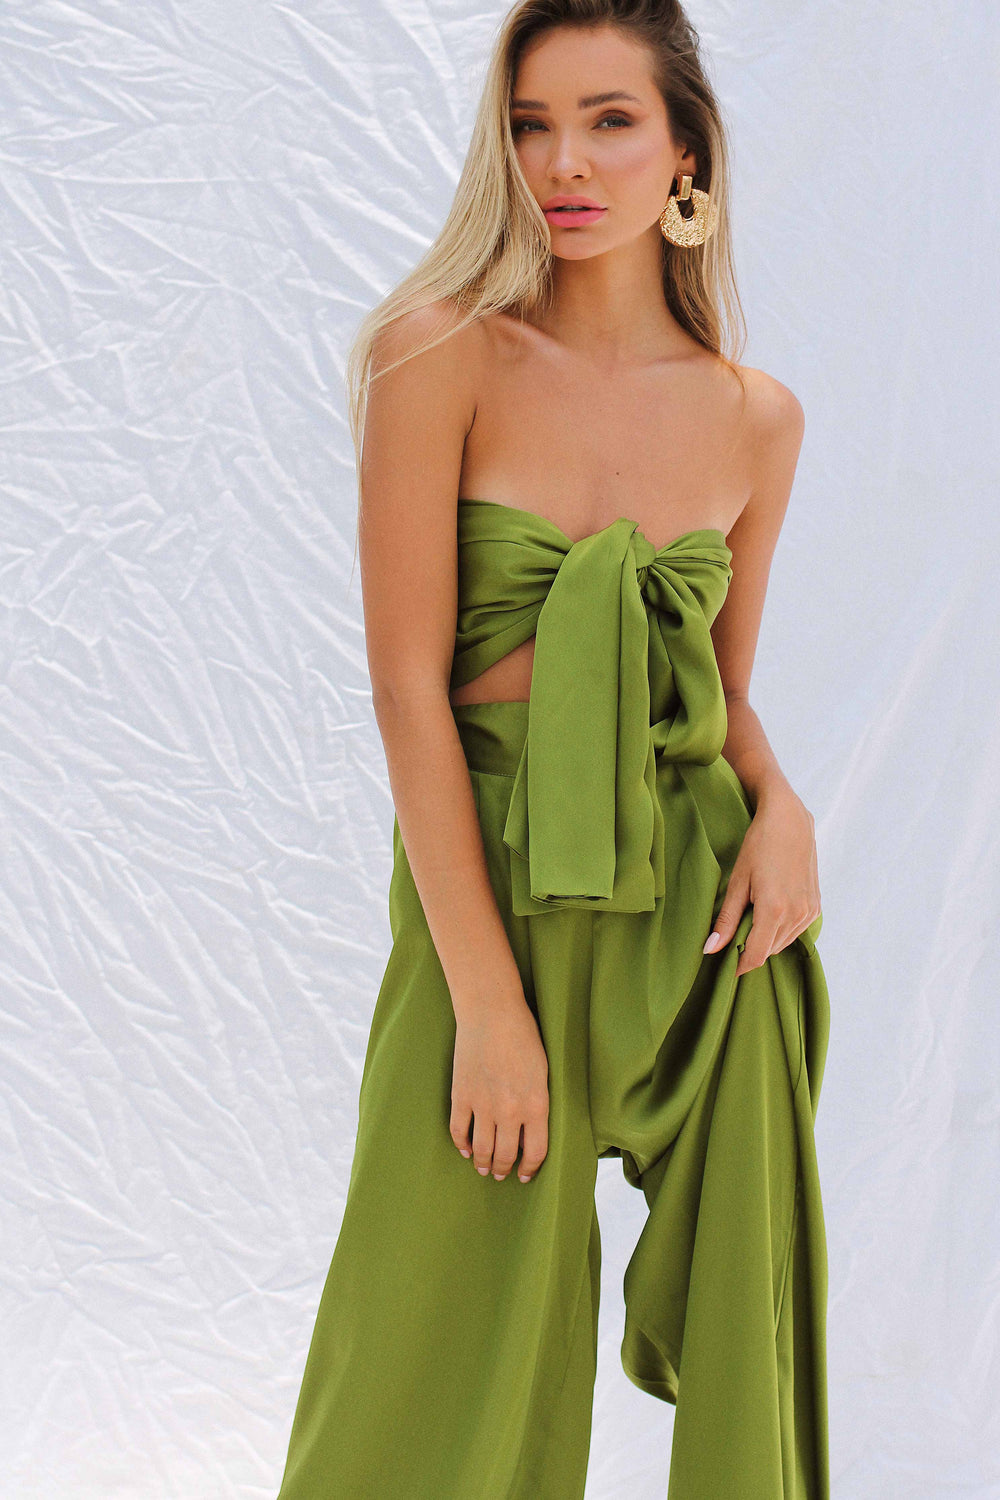 THEOLA SET IN GREEN - Chic Le Frique